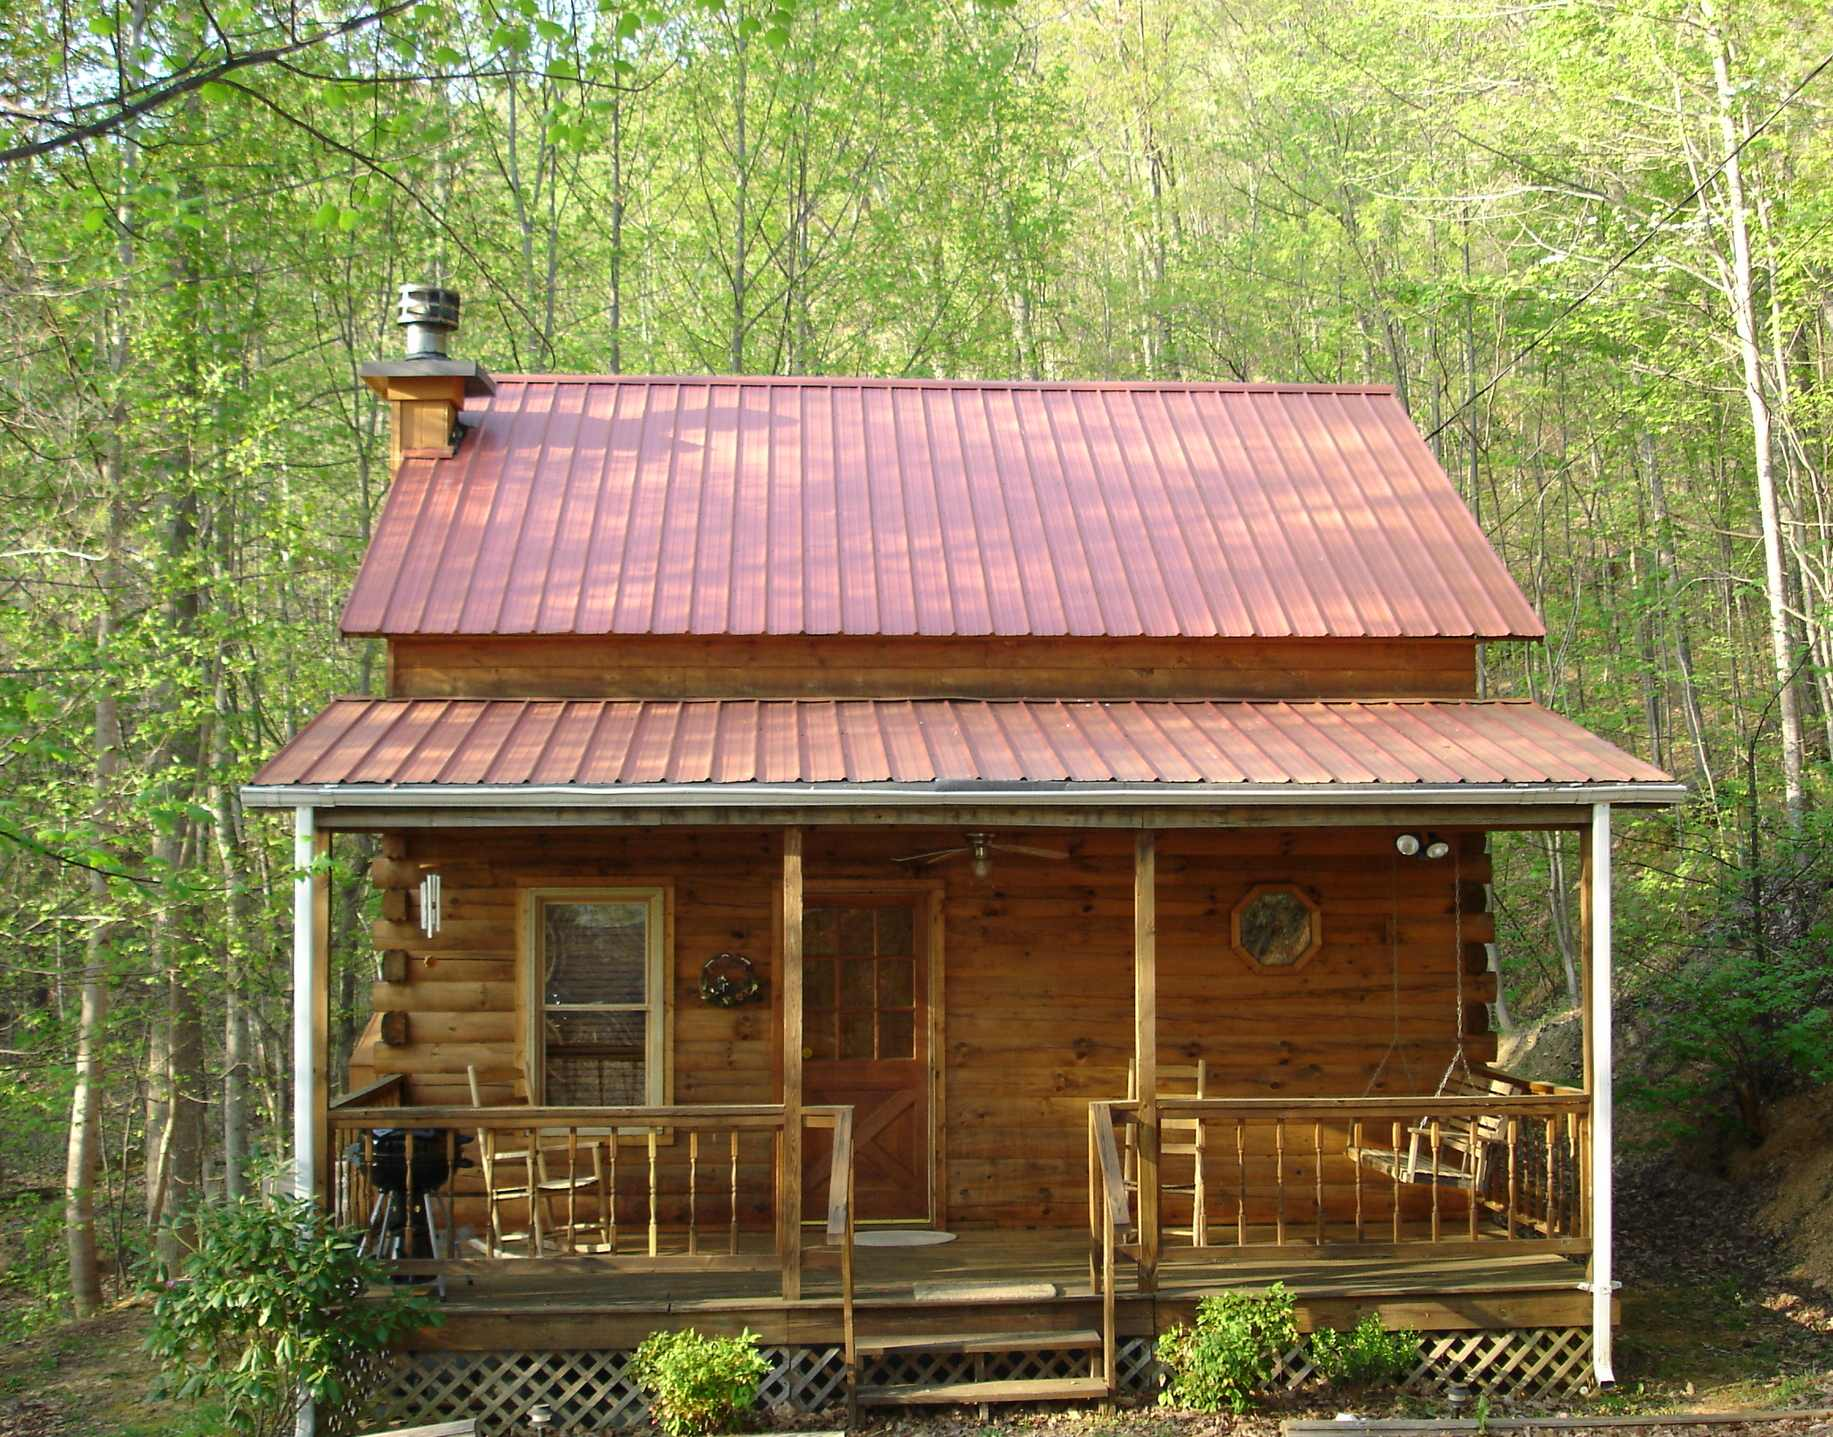 Cabin home log home lake house on pinterest log Small cabin plans